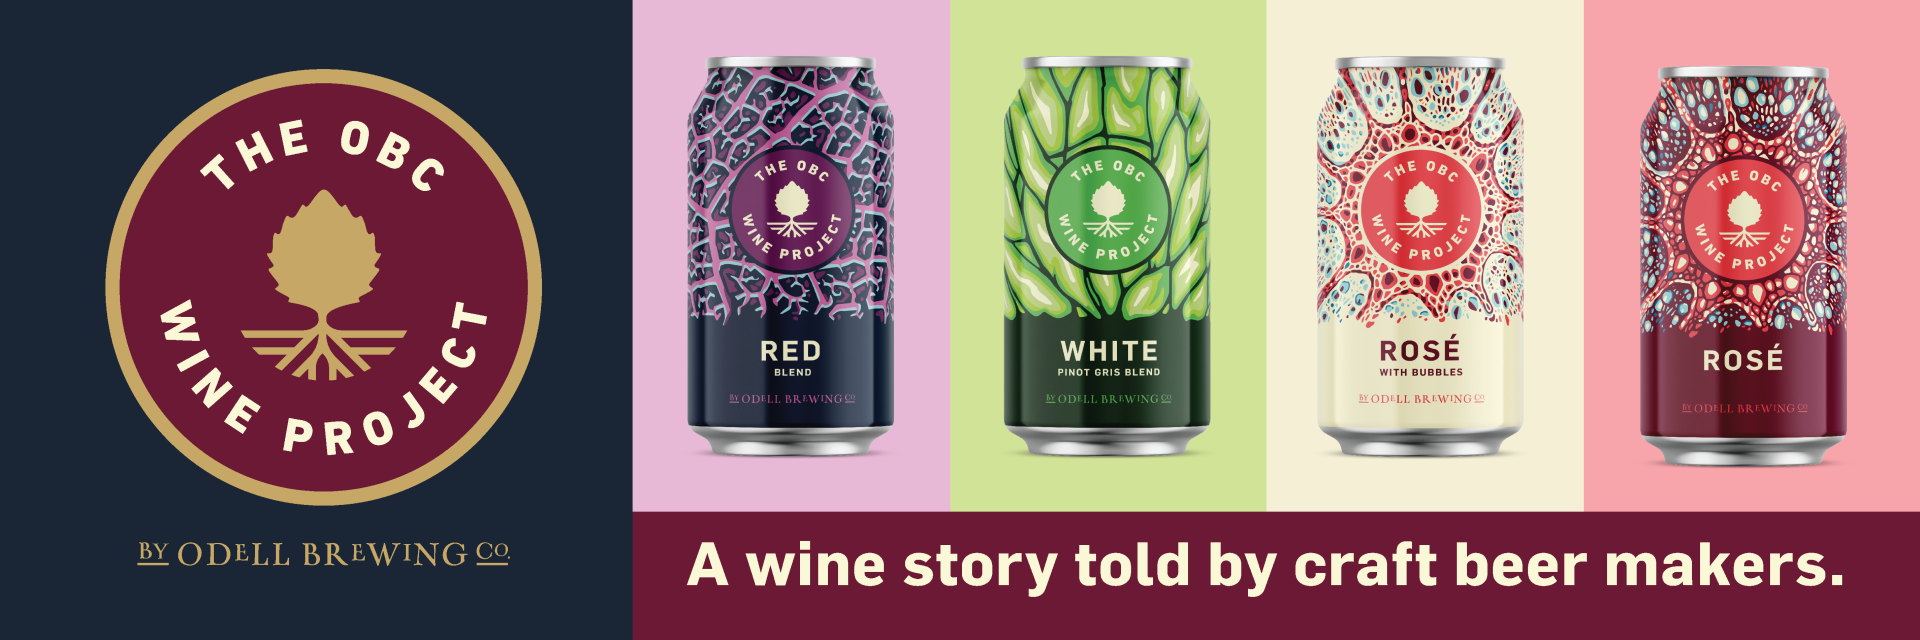 cover image of Odell Wine Project including cans of all wine varietals, the red blend, white pinot gris blend, rose with bubbles, and the rose